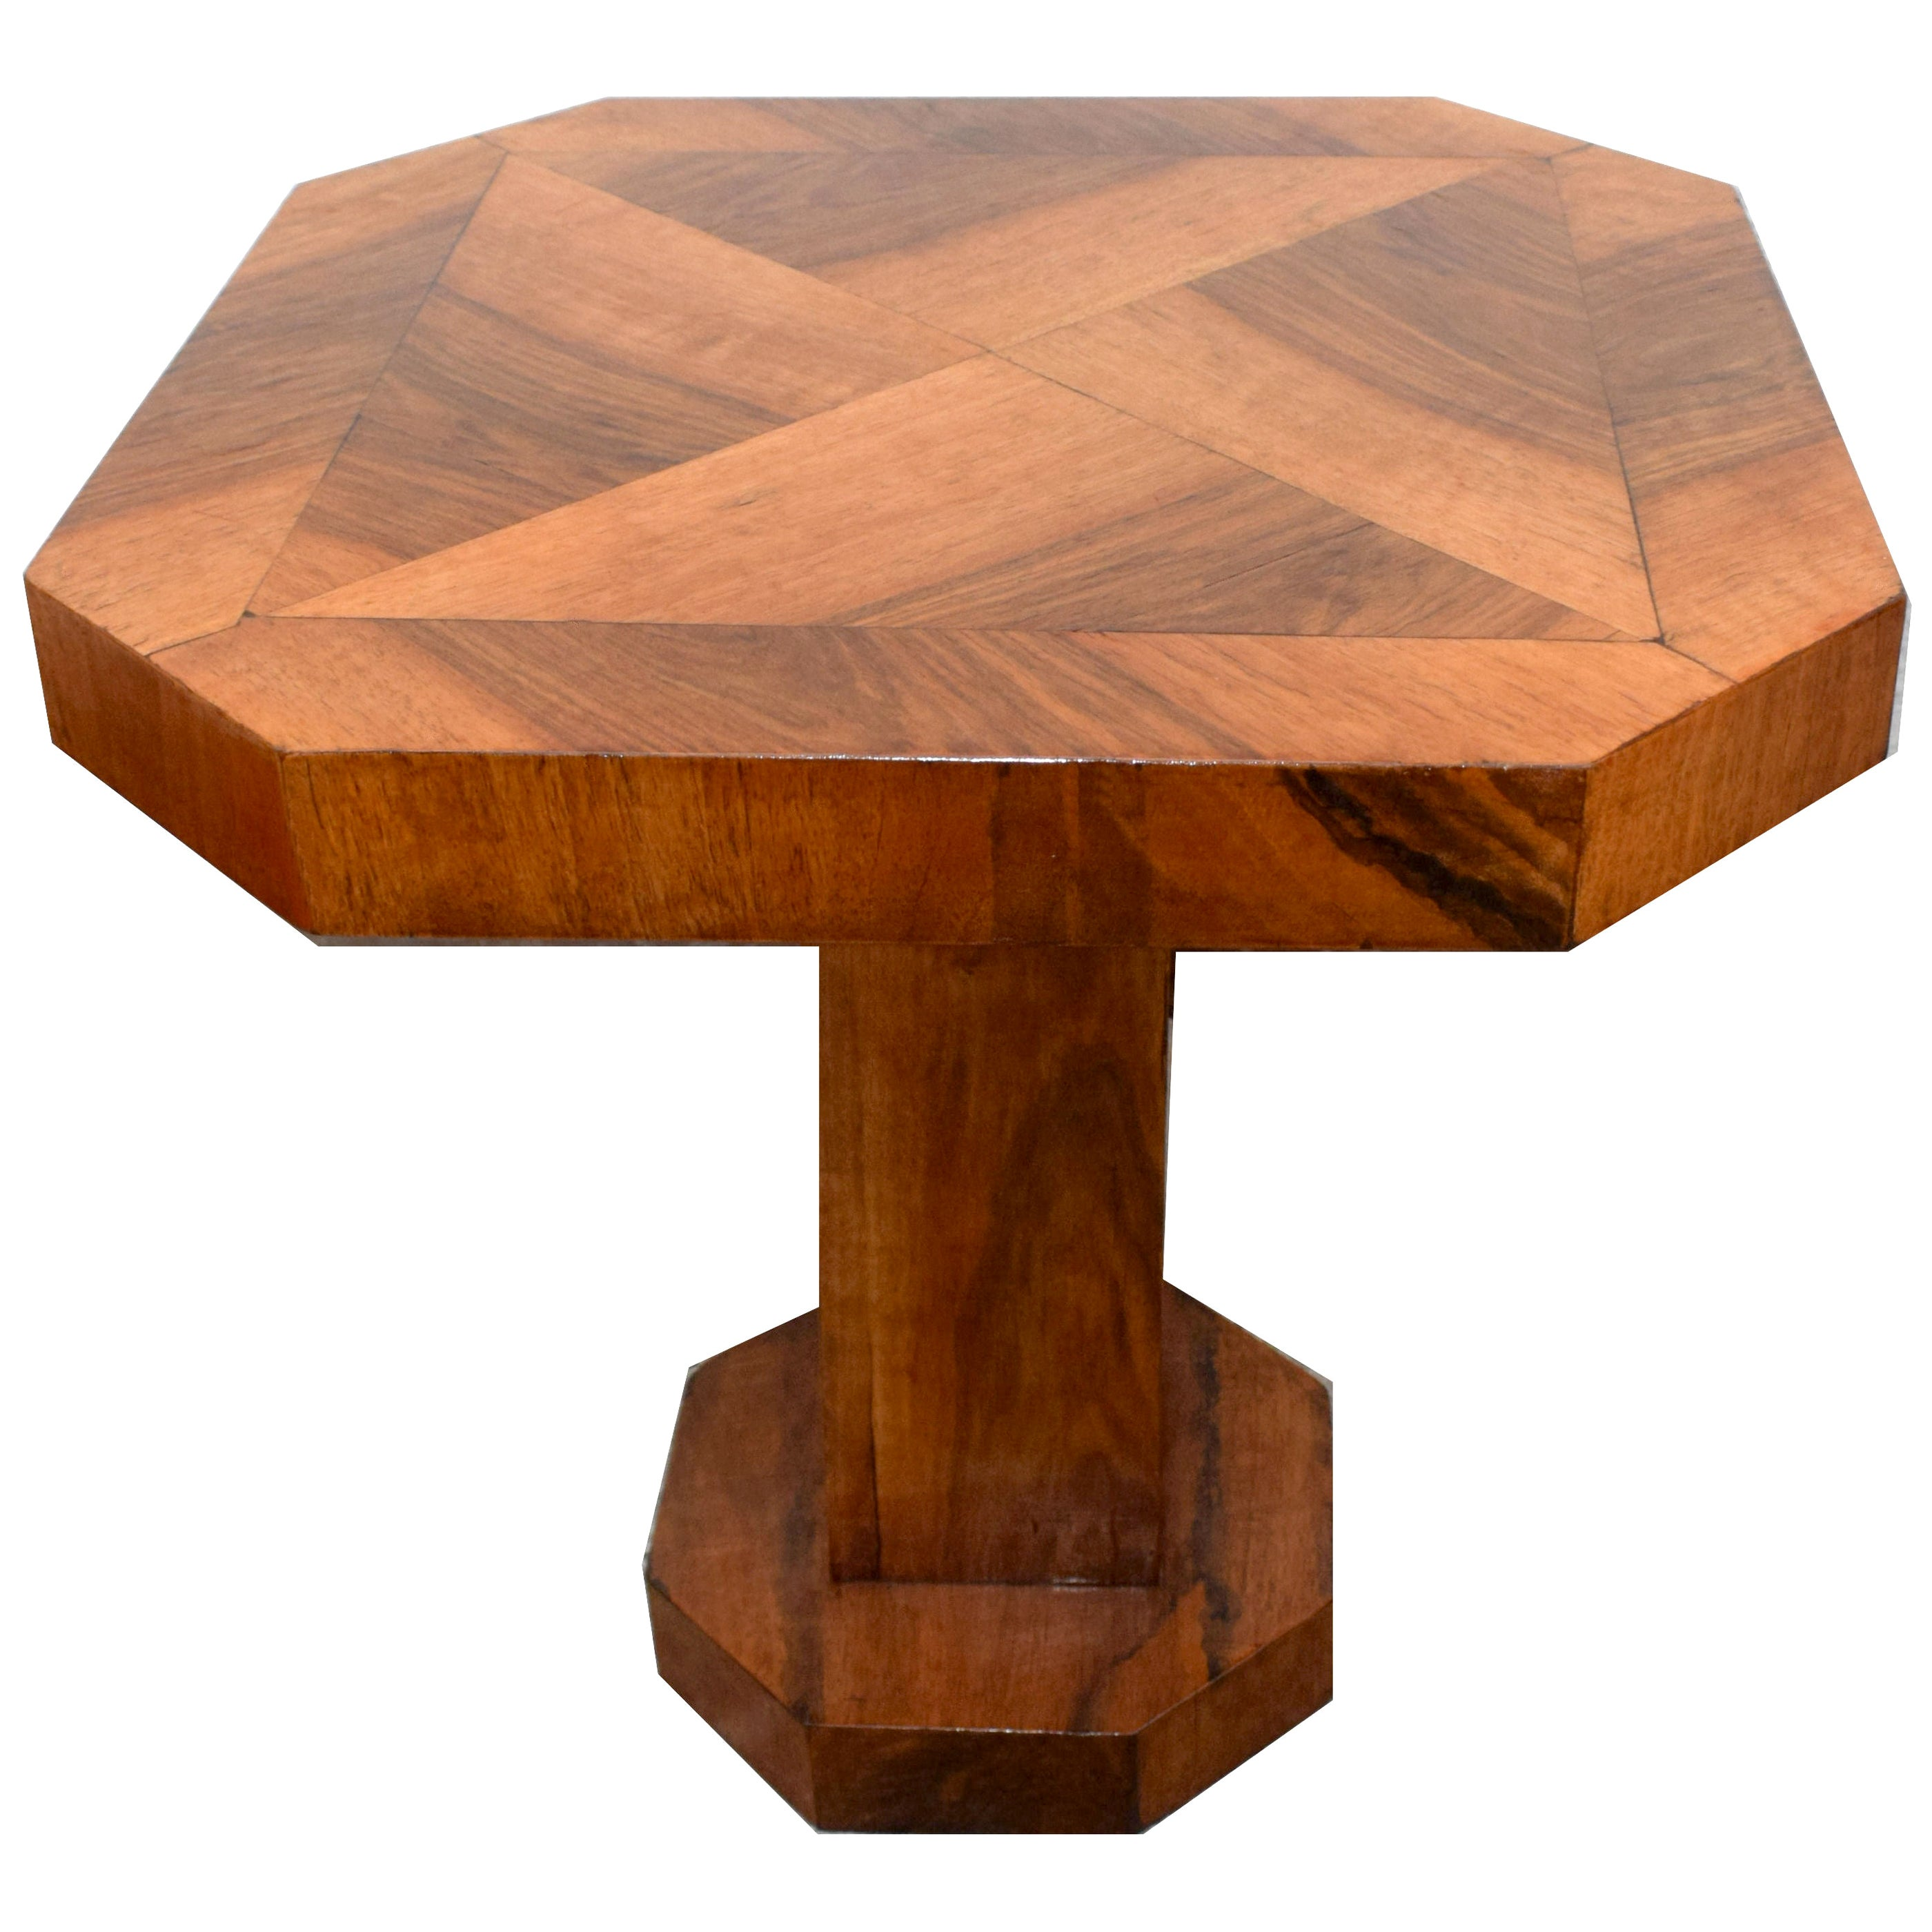 Art Deco Walnut Coffee Table, English, circa 1930